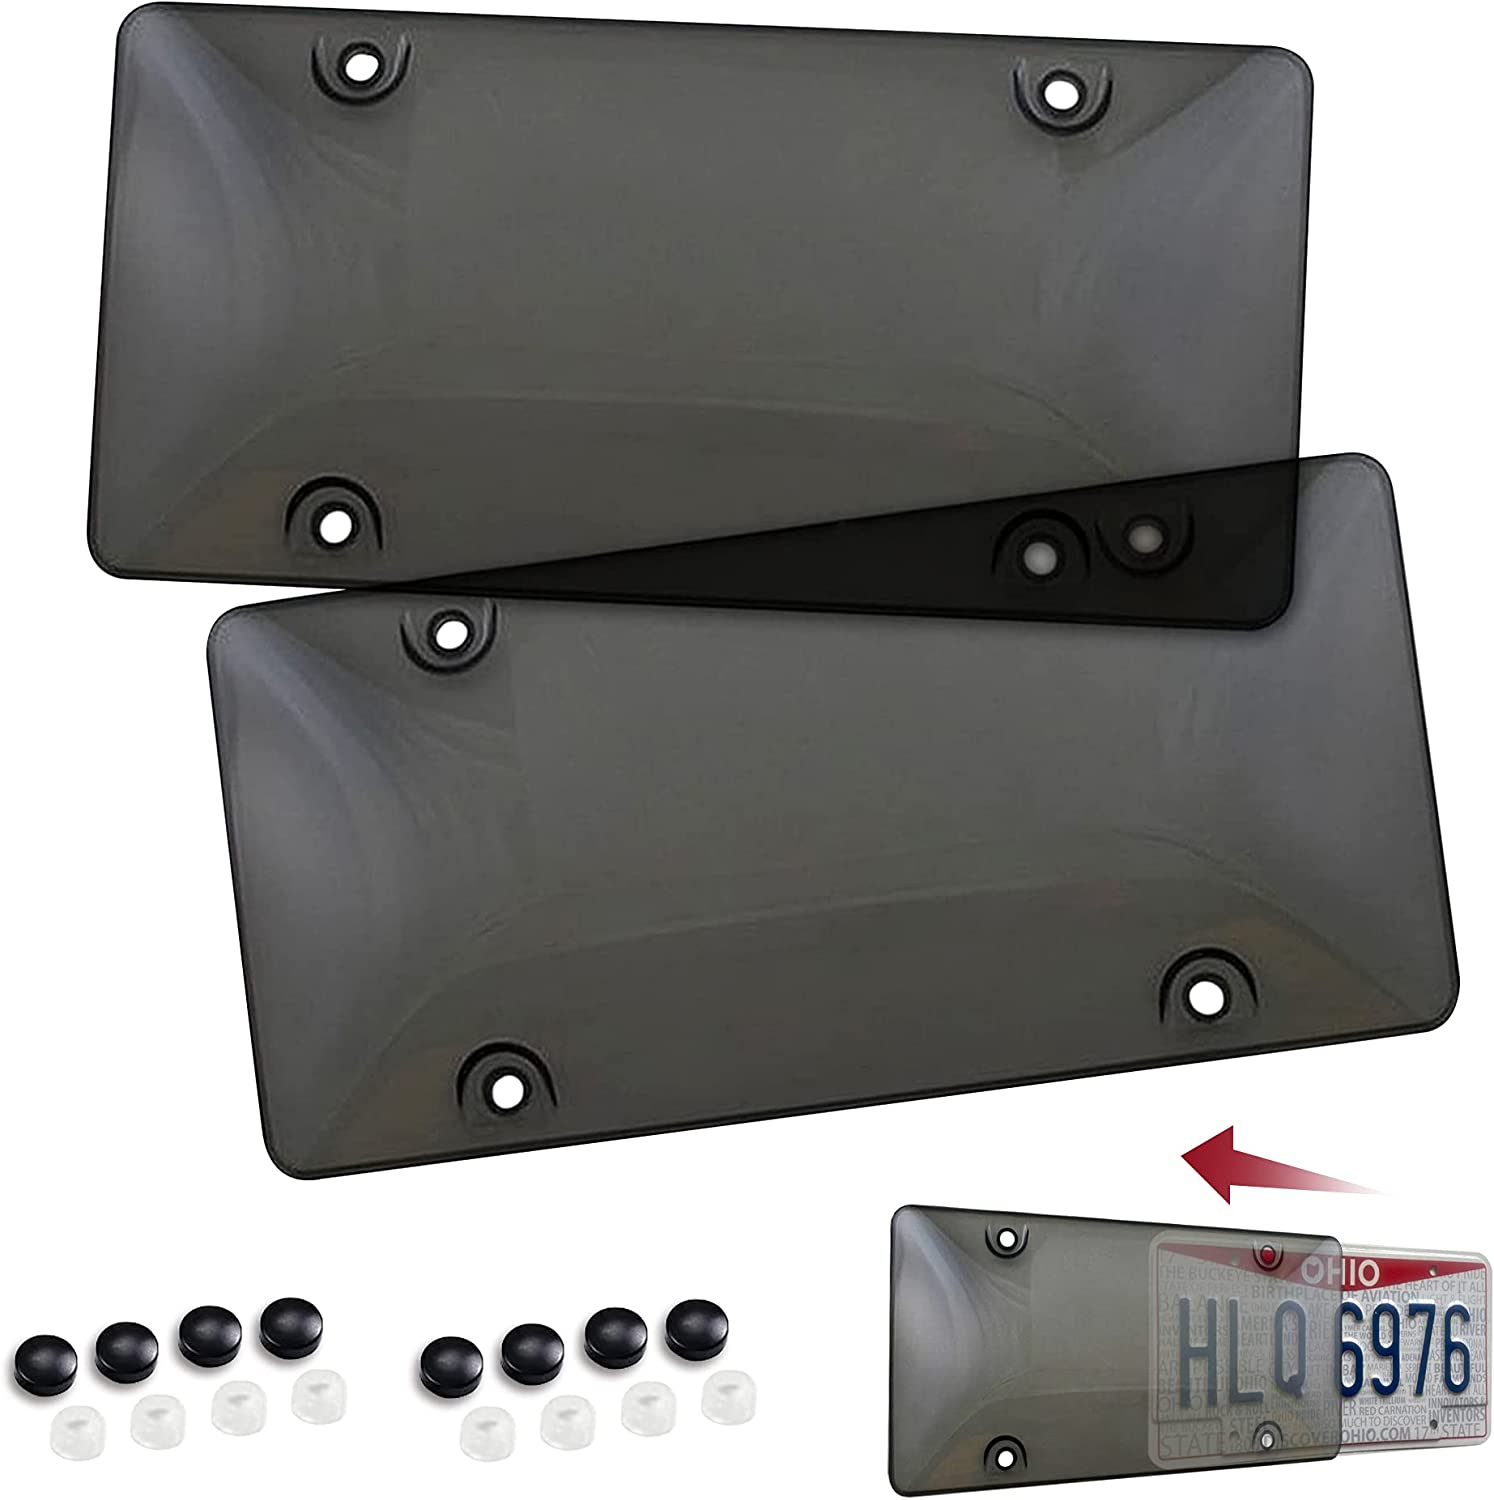 Tinted License Plate Cover Set of Standard Fit - Front & Back Bling License Plates Shield Fastening to Frames - Premium Automotive Exterior Car & Truck Accessories for Teens, Men & Women, 6